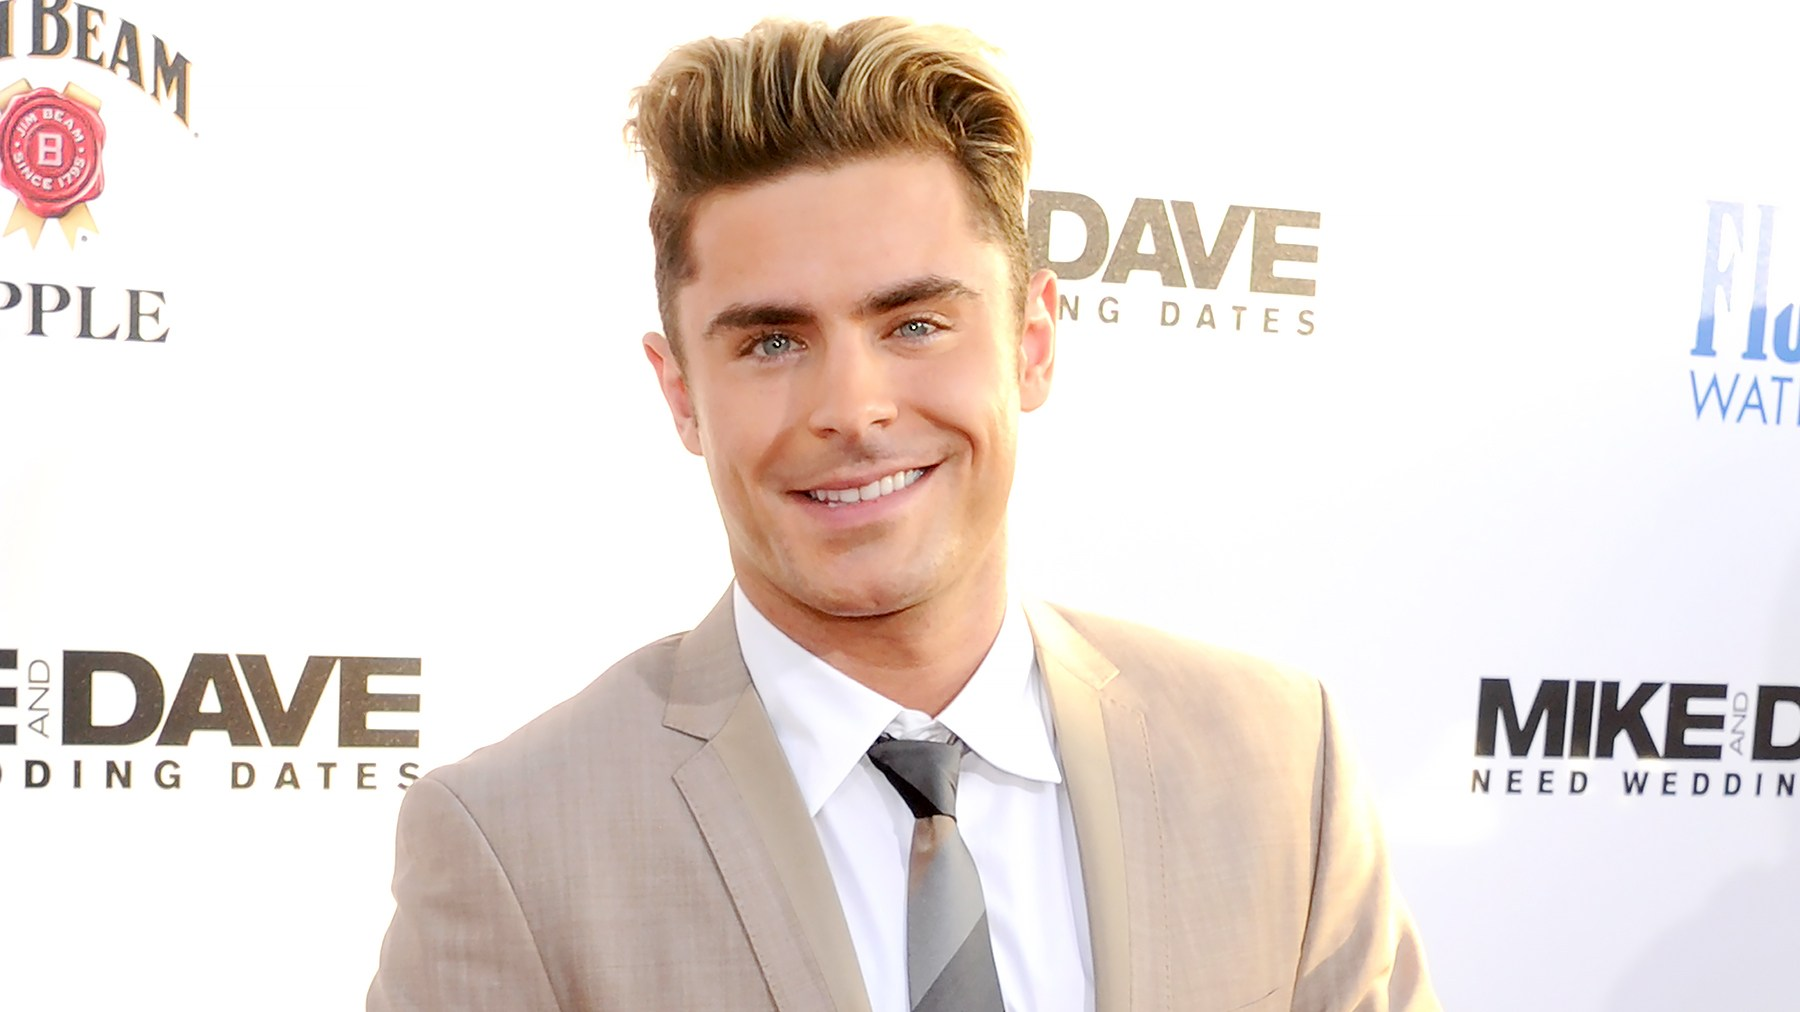 """Zac Efron arrives at the premiere of 20th Century Fox's """"Mike And Dave Need Wedding Dates"""" at the Cinerama Dome at ArcLight Hollywood on June 29, 2016."""